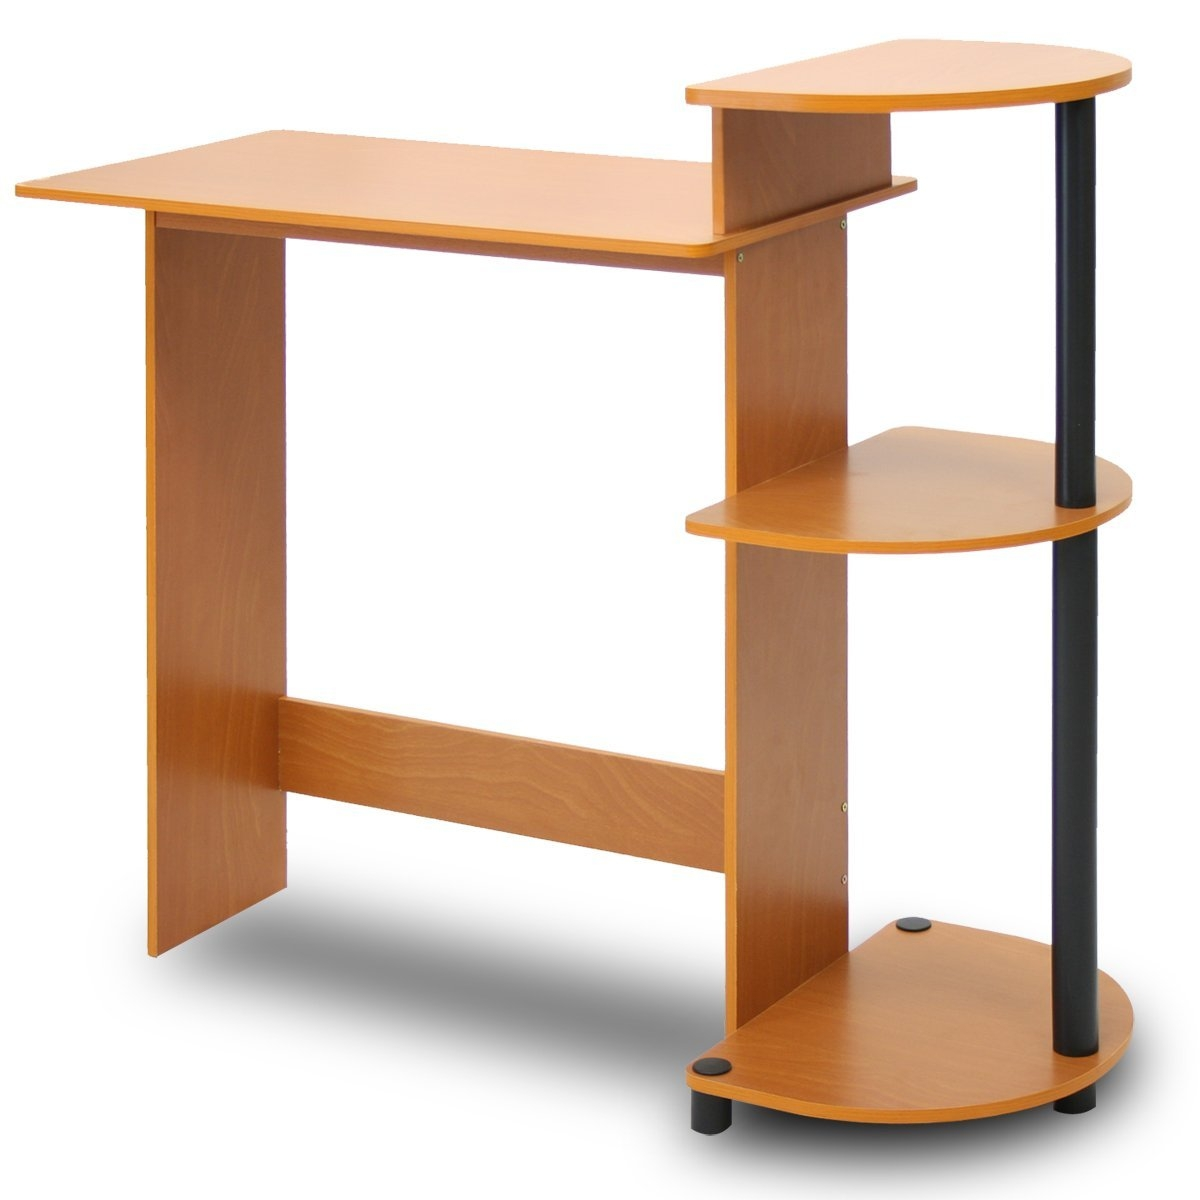 Simple Modern Home Office Computer Desk in Cherry Black Finish